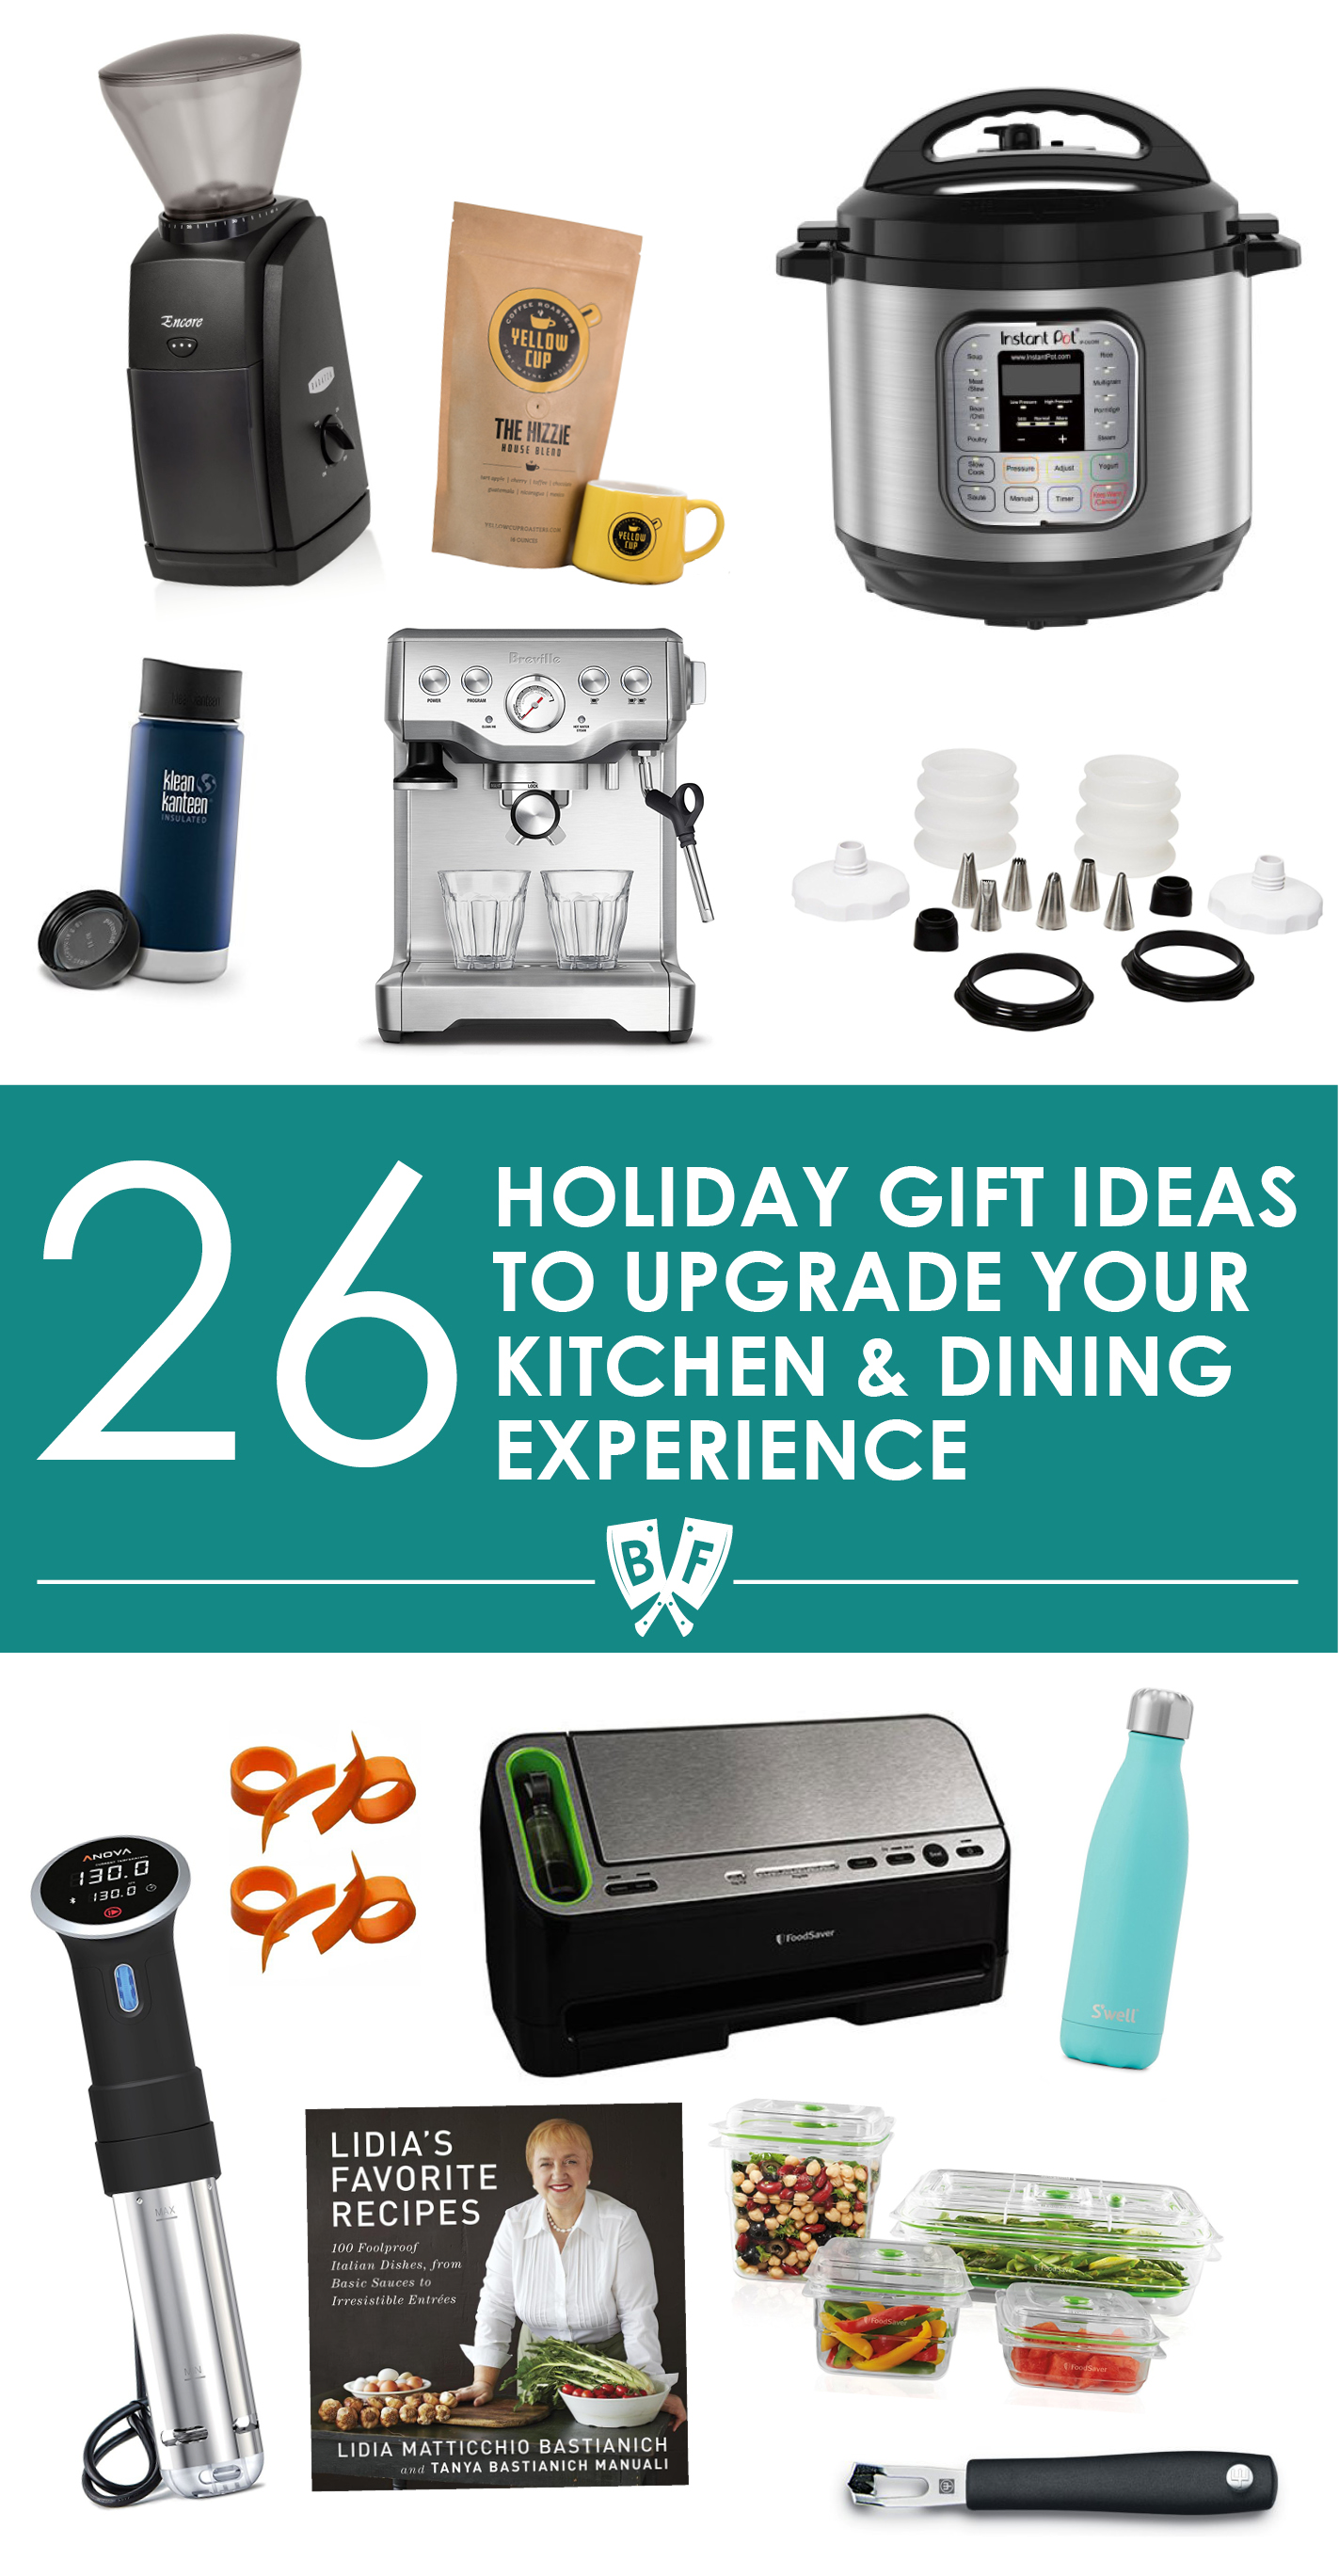 Holiday Gift Ideas to Upgrade Your Kitchen & Dining Experience: A list of holiday gift ideas + stocking stuffers for people who enjoy spending time cooking & entertaining. These 26 items will seriously rock your world!